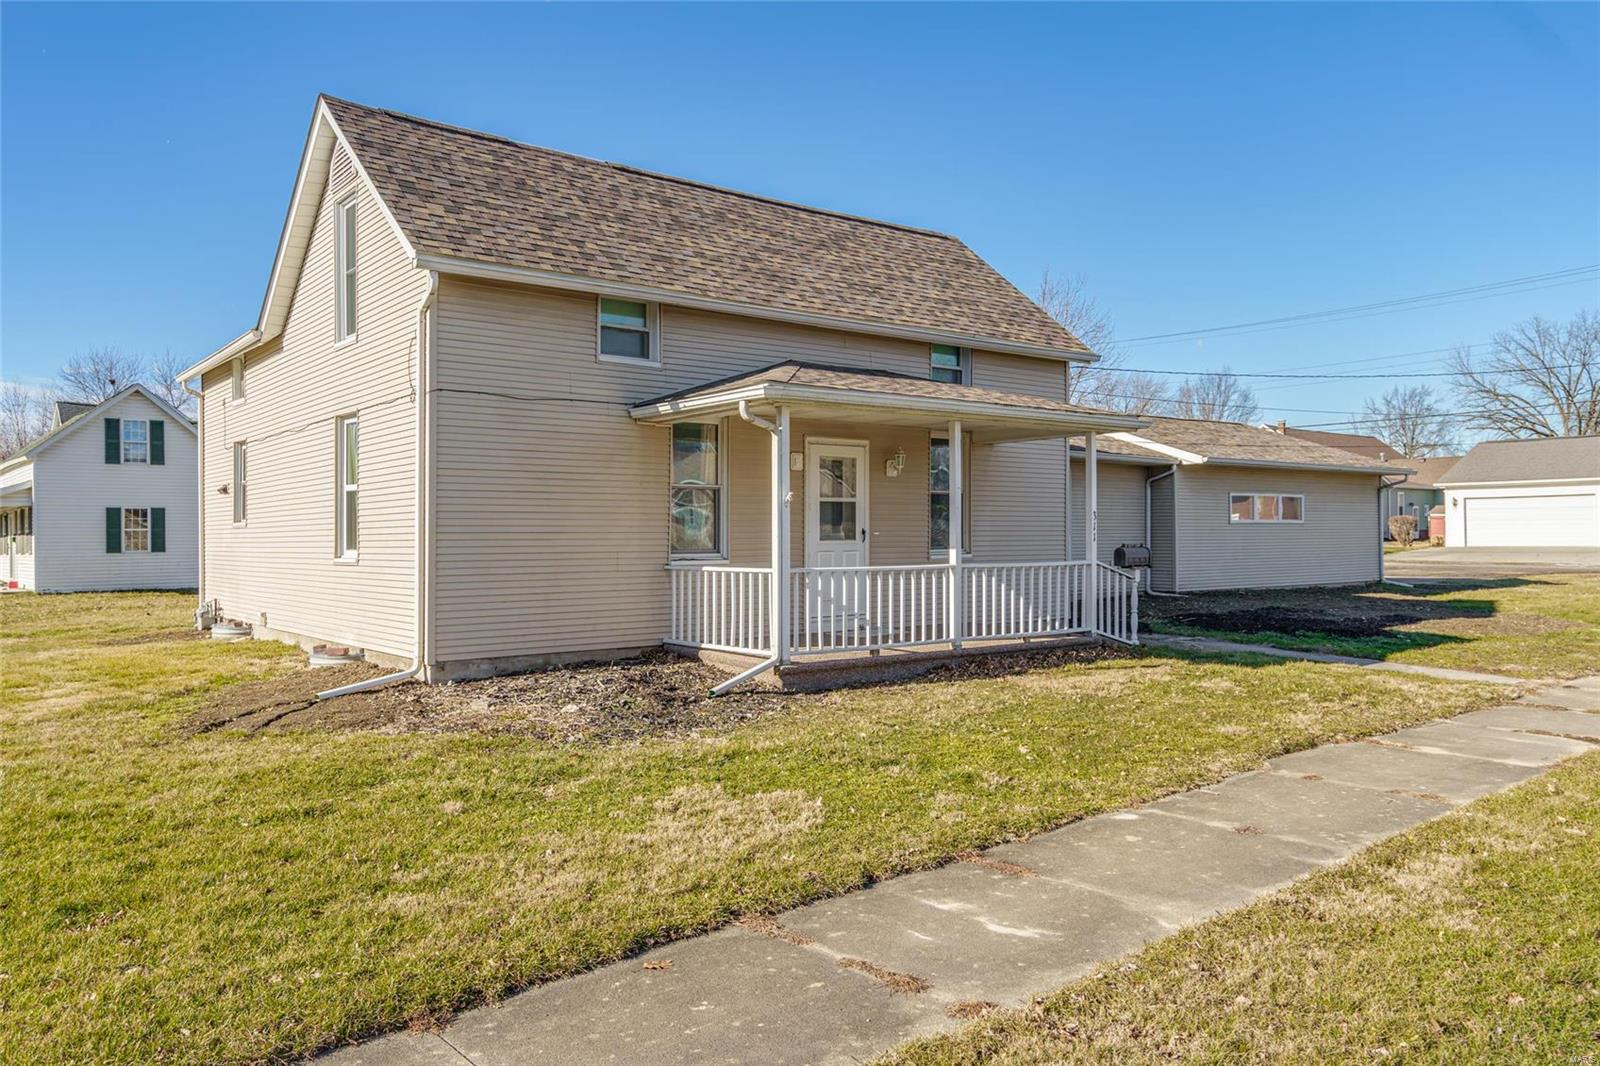 311 S Cherry Street Property Photo - Mount Olive, IL real estate listing